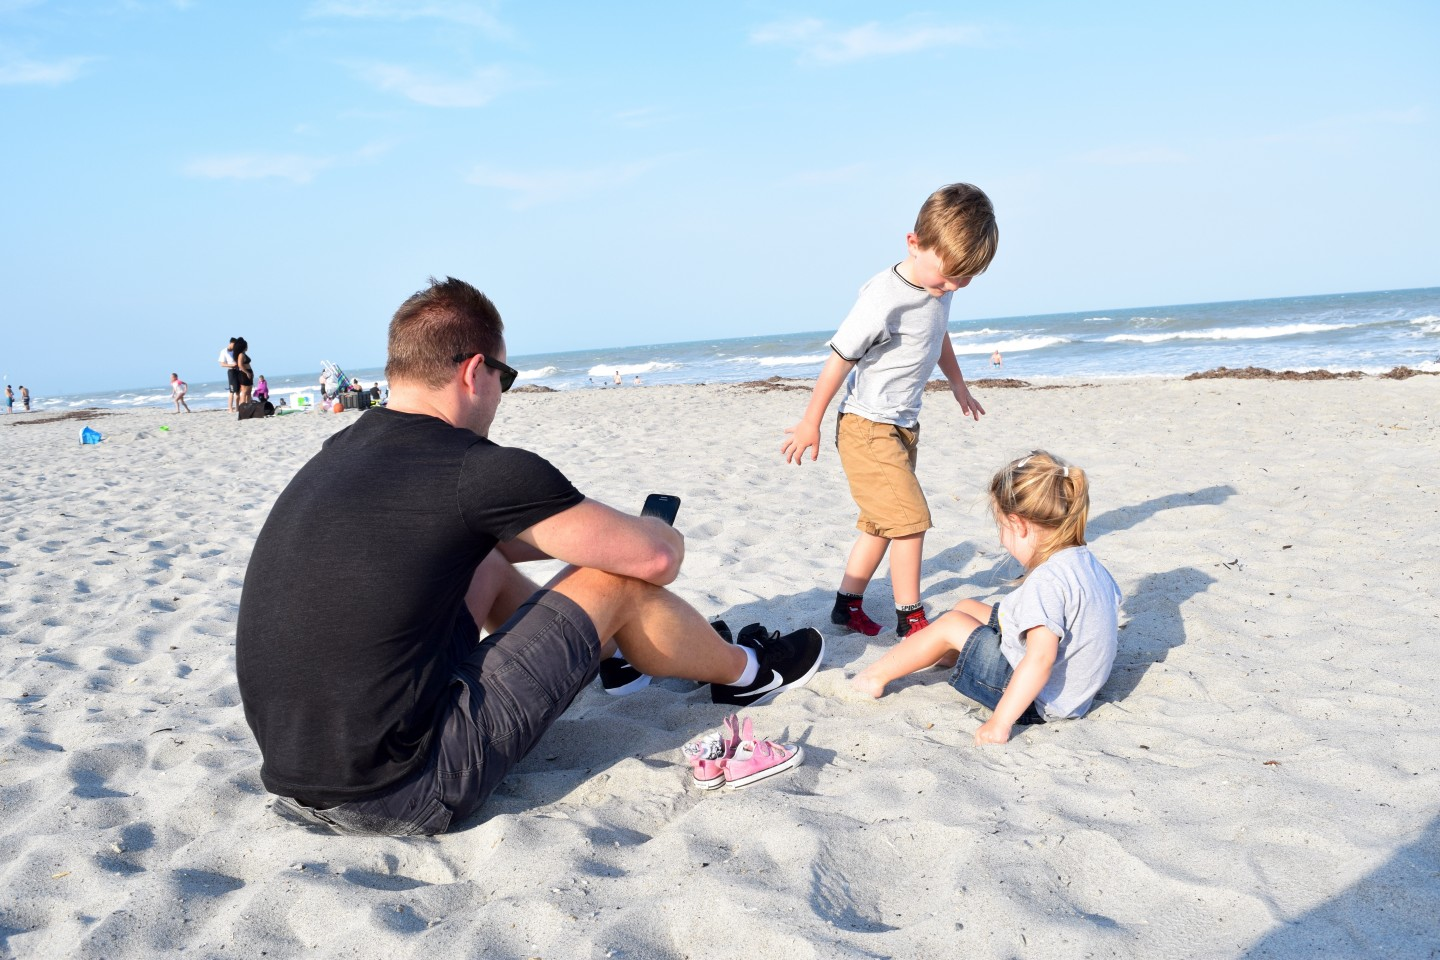 Florida Family Travel: Orlando vs Clearwater